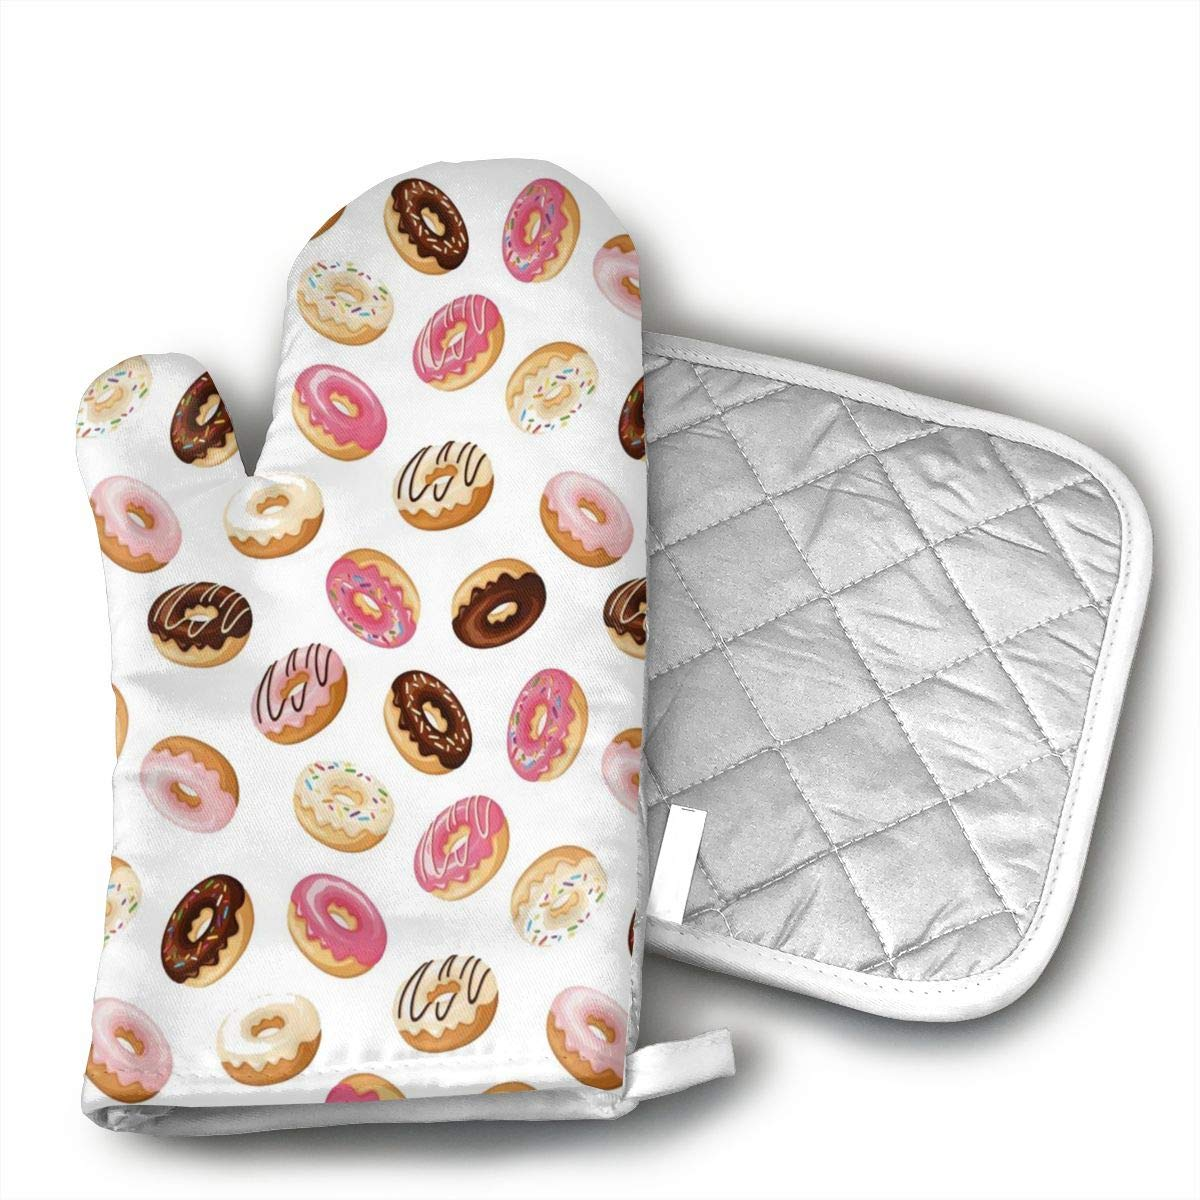 Breakfast Fast Food Dessert Donuts Oven Mitts,Professional Heat Resistant Microwave Oven Insulation Thickening Gloves Soft Inner Lining Kitchen Cooking Mittens